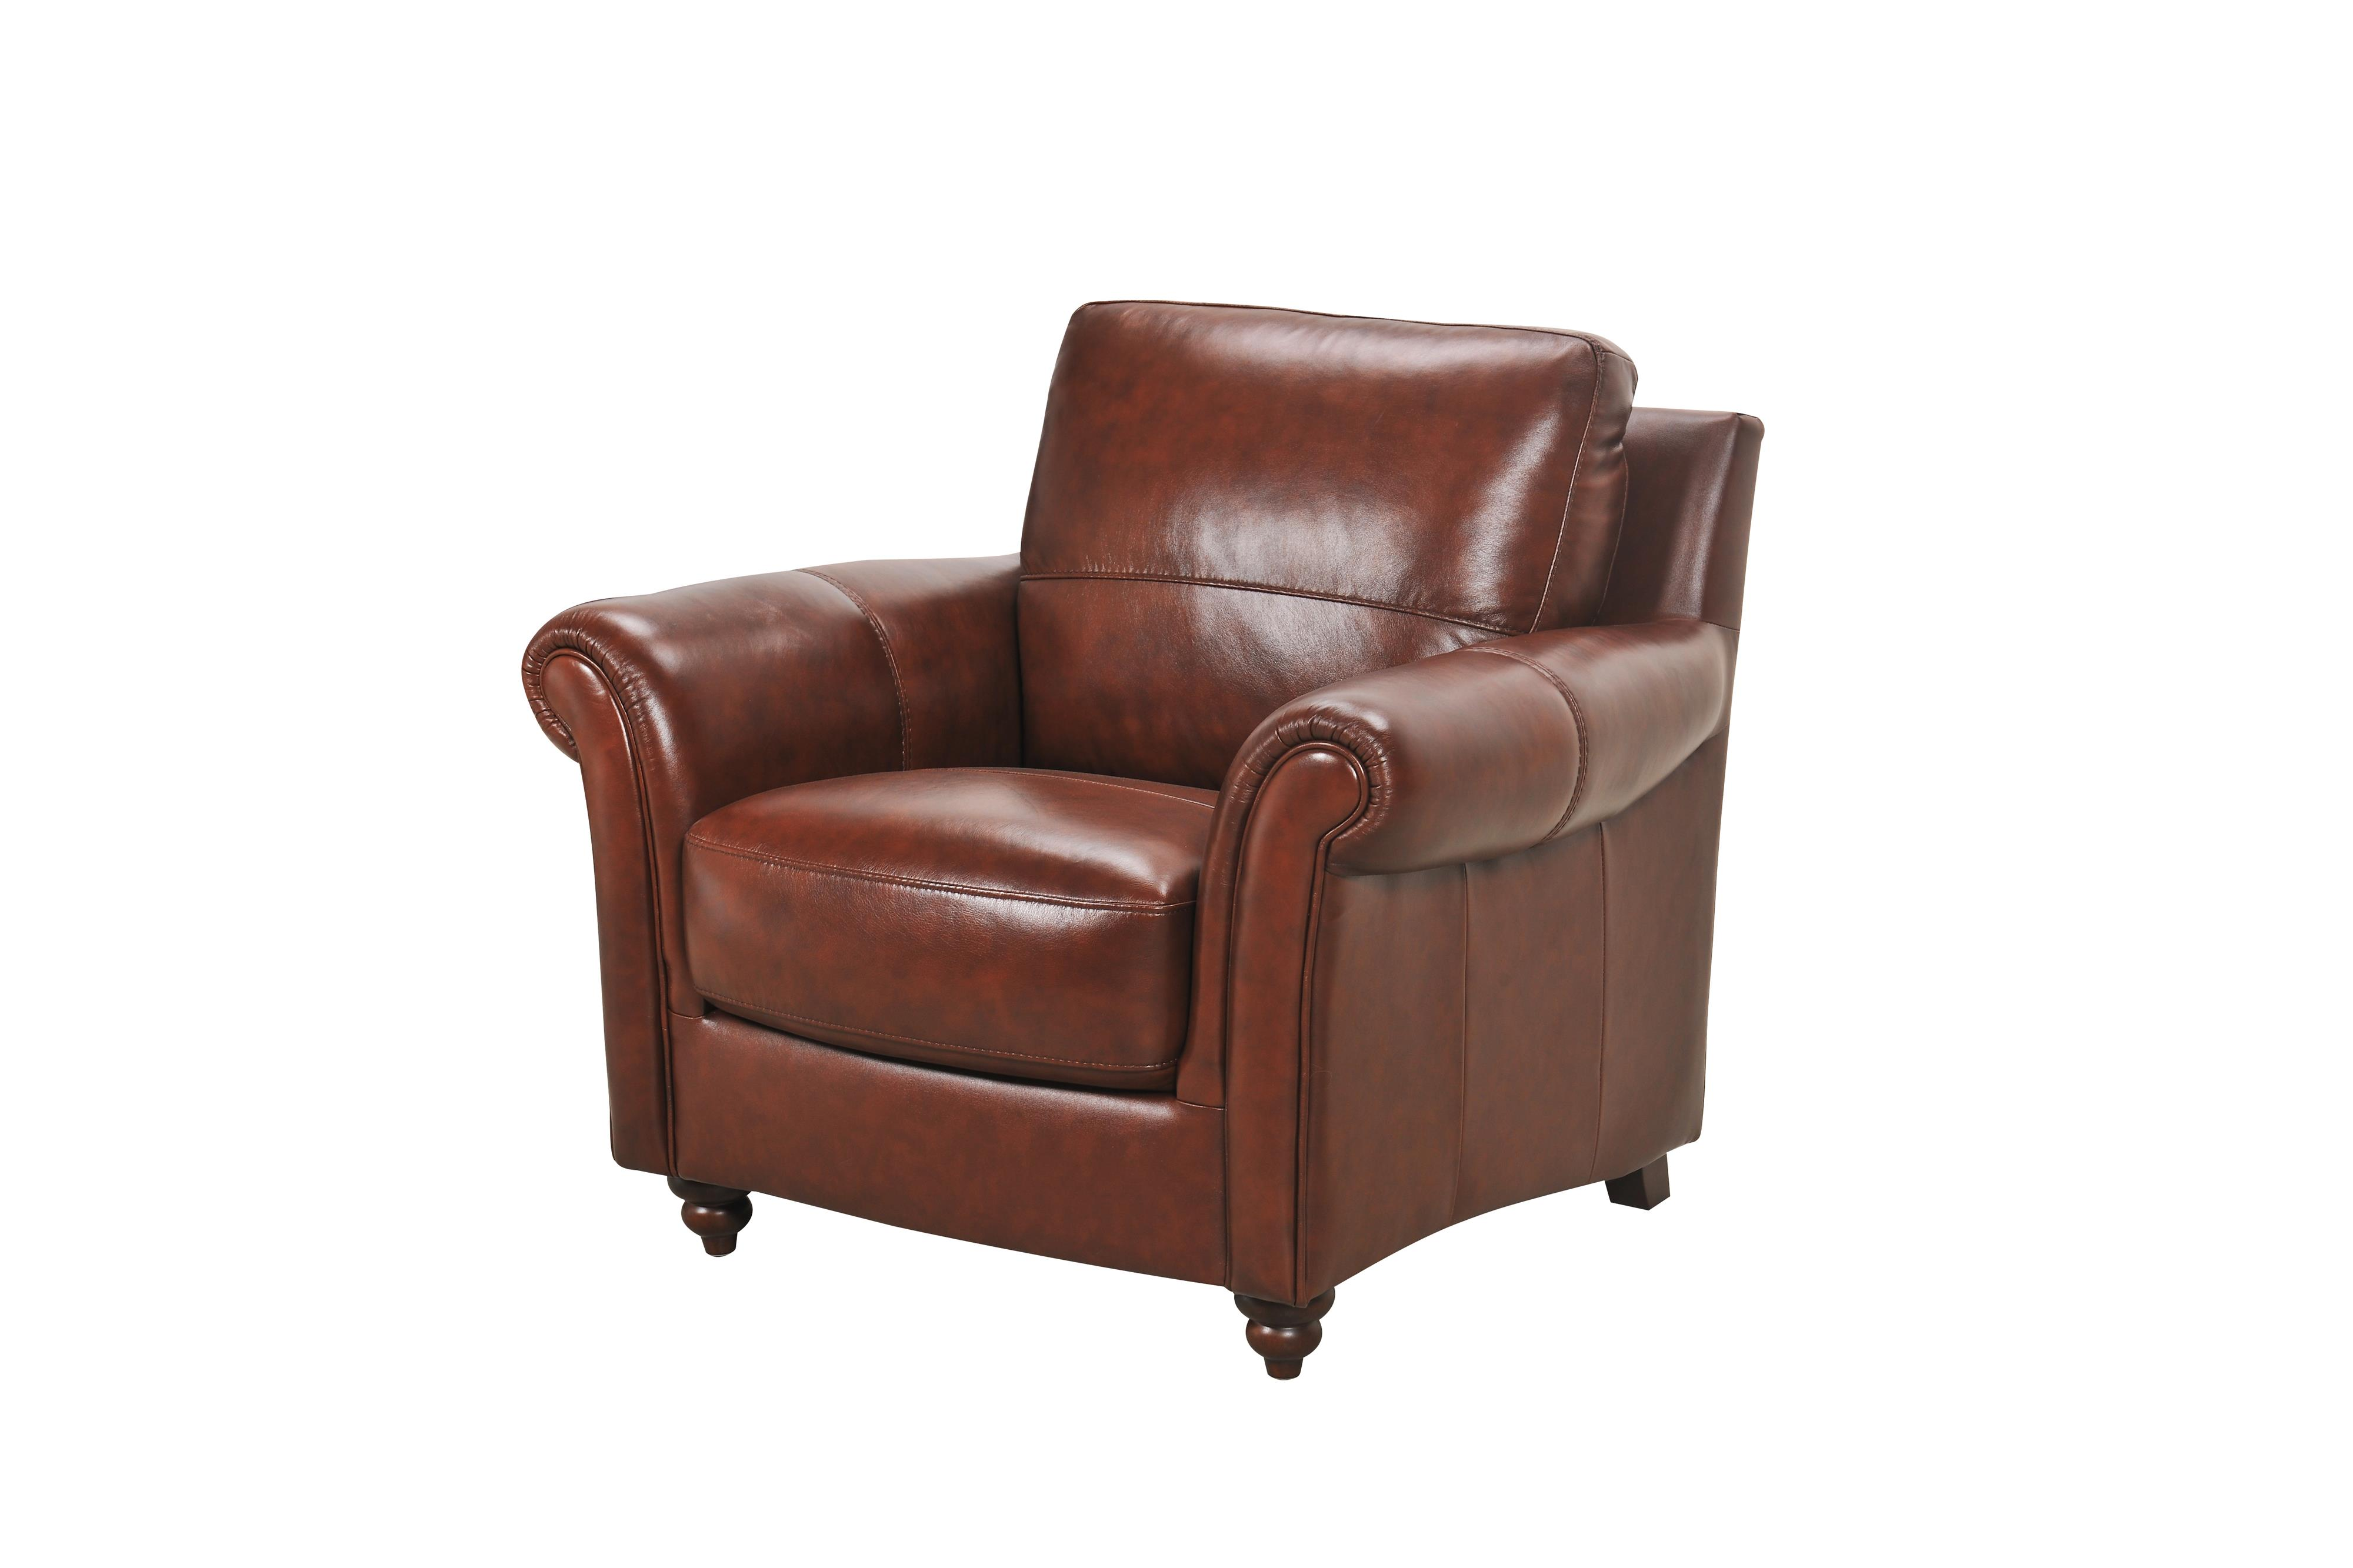 Grady Leather Chair with Rolled Arms and Turned Wo by Violino at O'Dunk & O'Bright Furniture